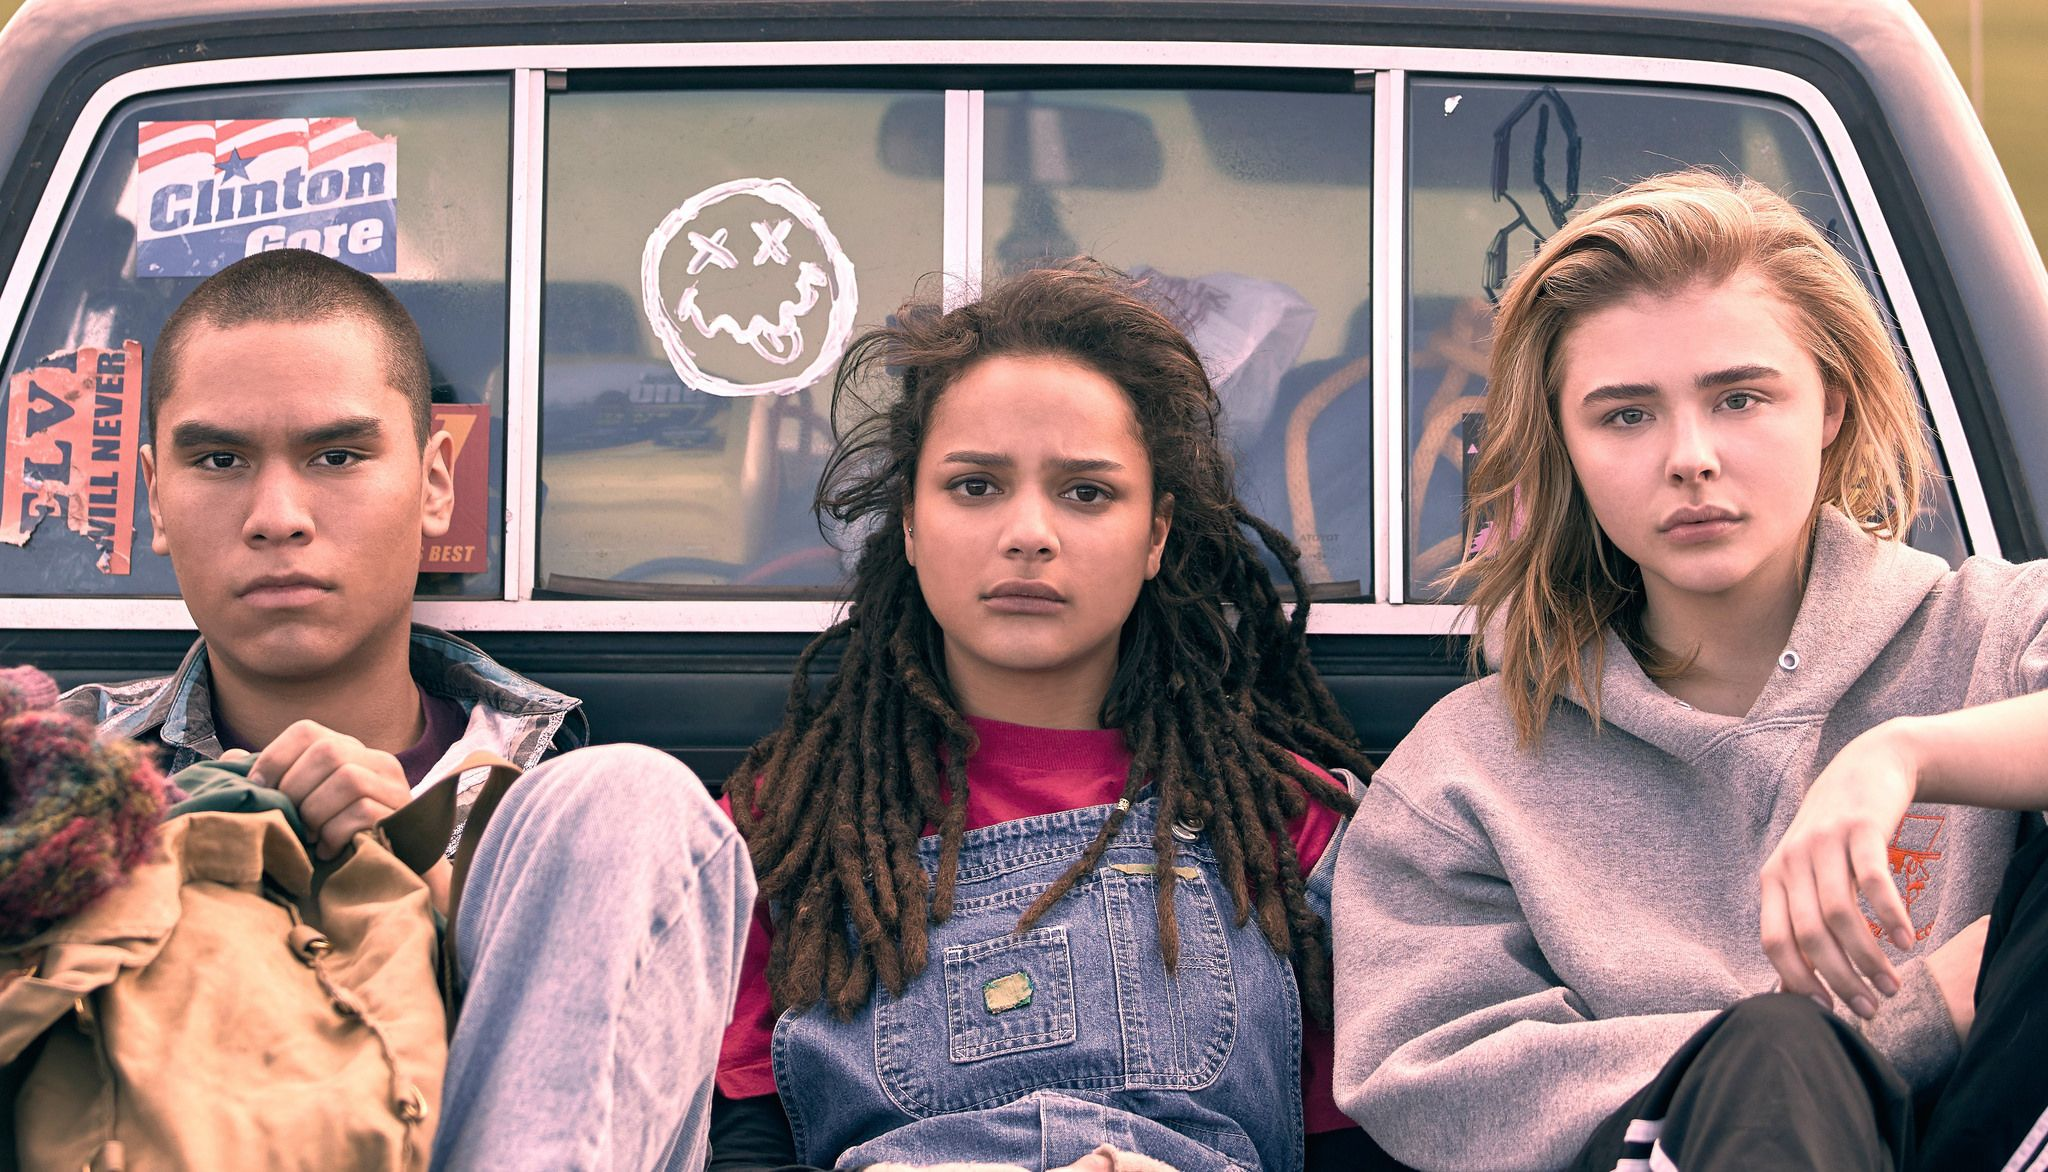 Screenshot from the upcoming film of three teens in the back of a truck